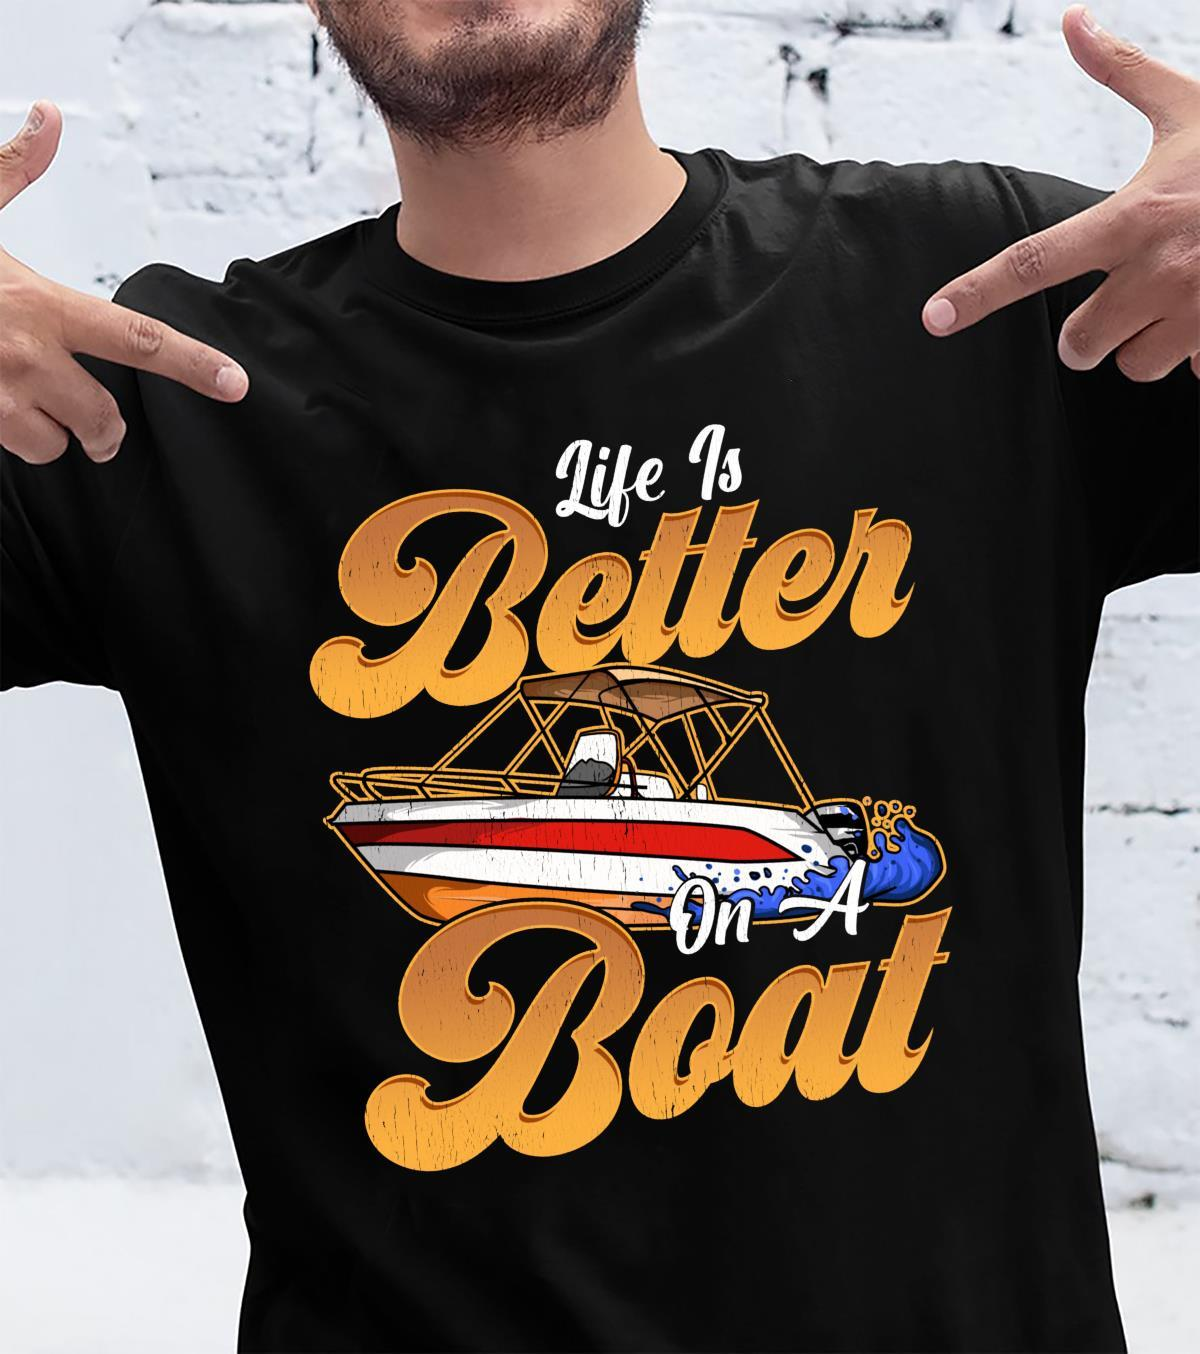 Life Is Better On A Boat Shirt